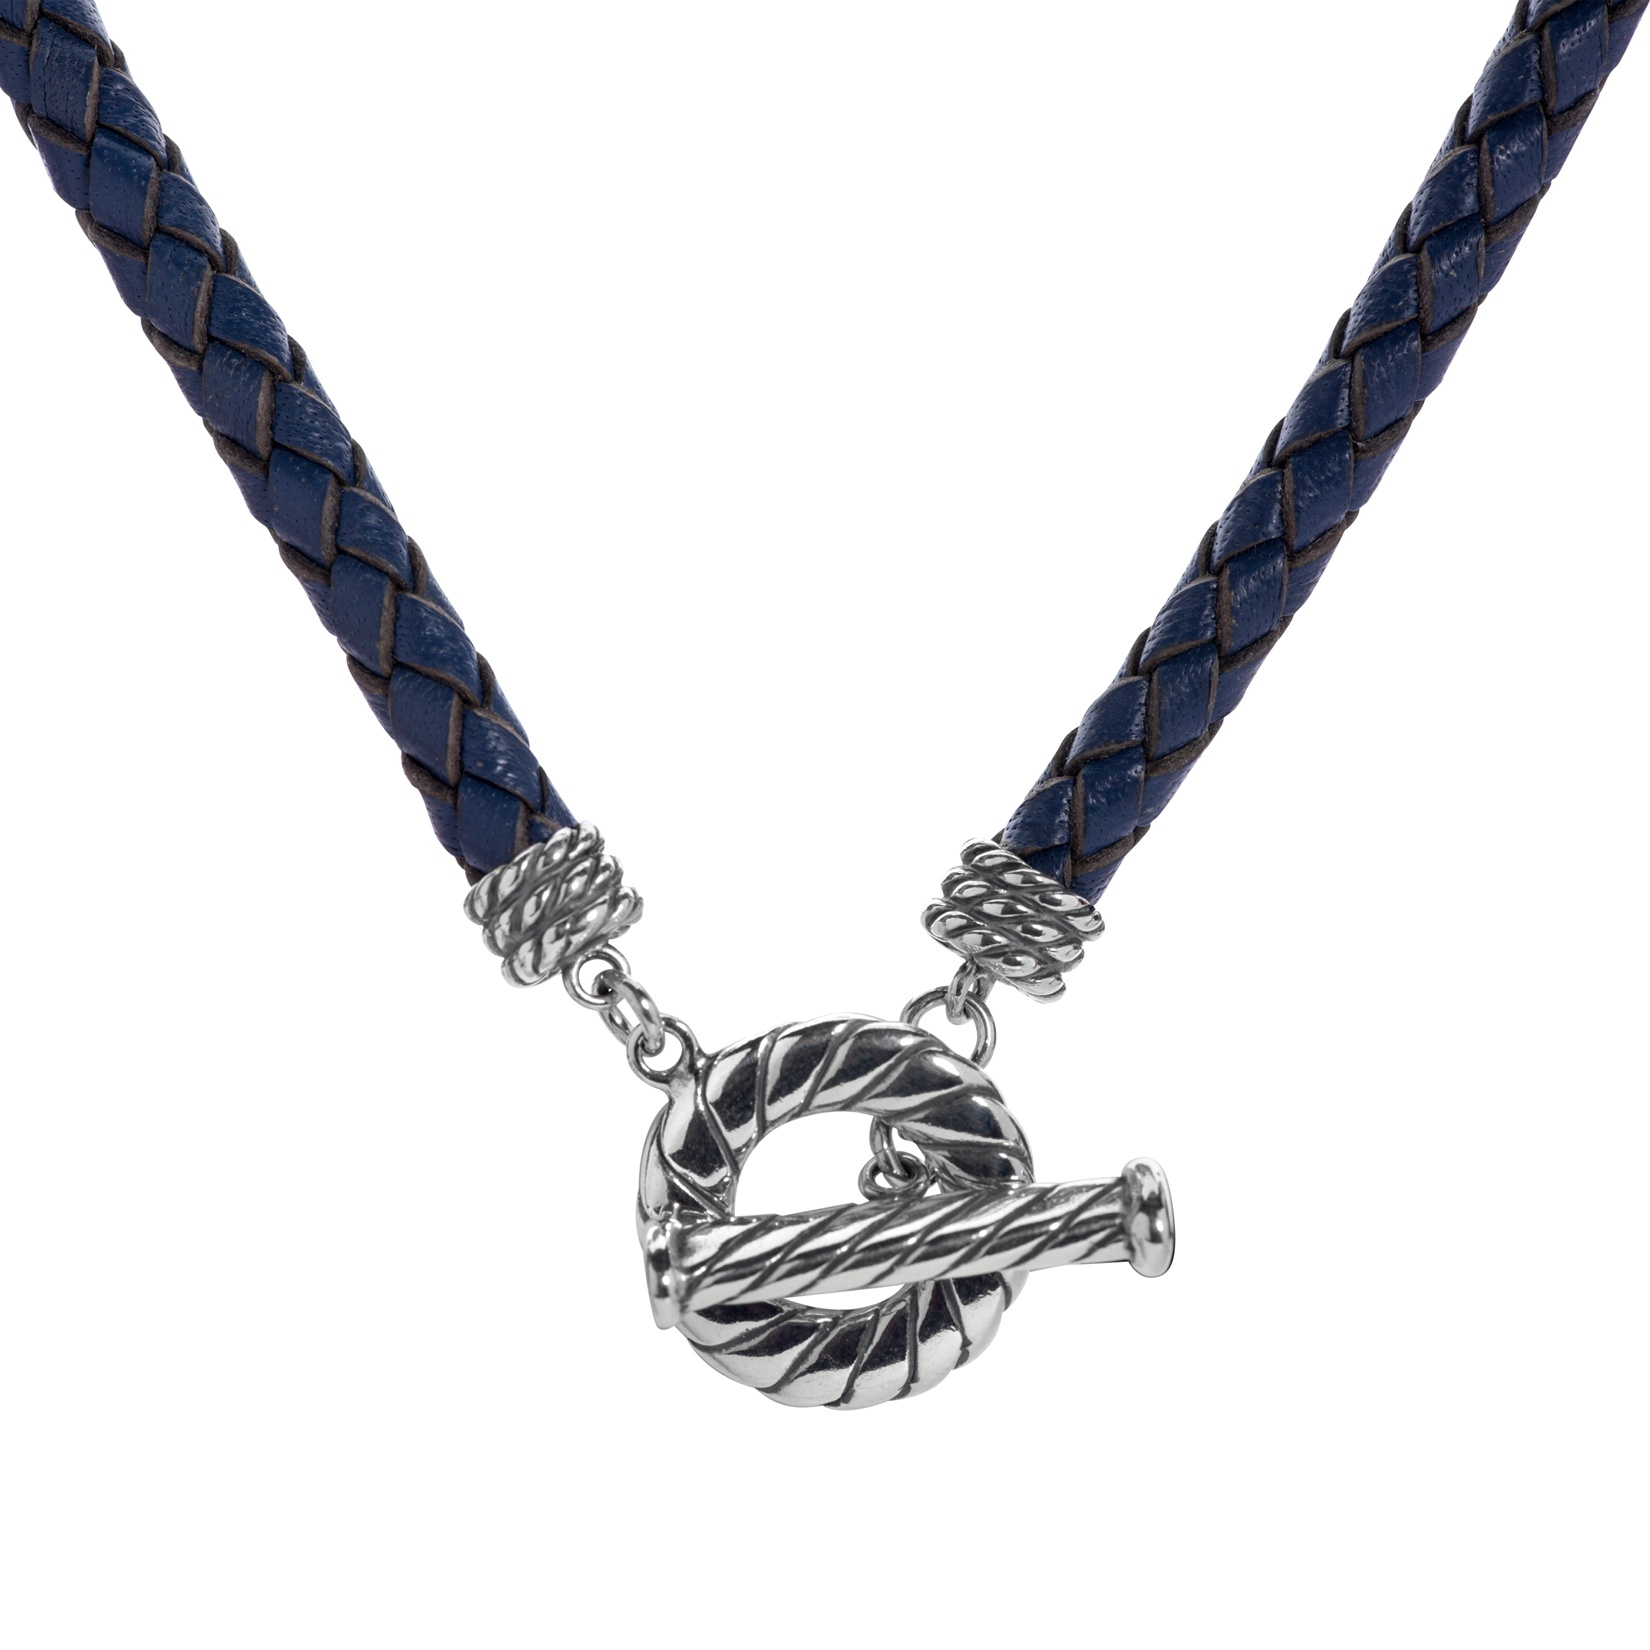 20 Inch Blue Leather Toggle Necklace